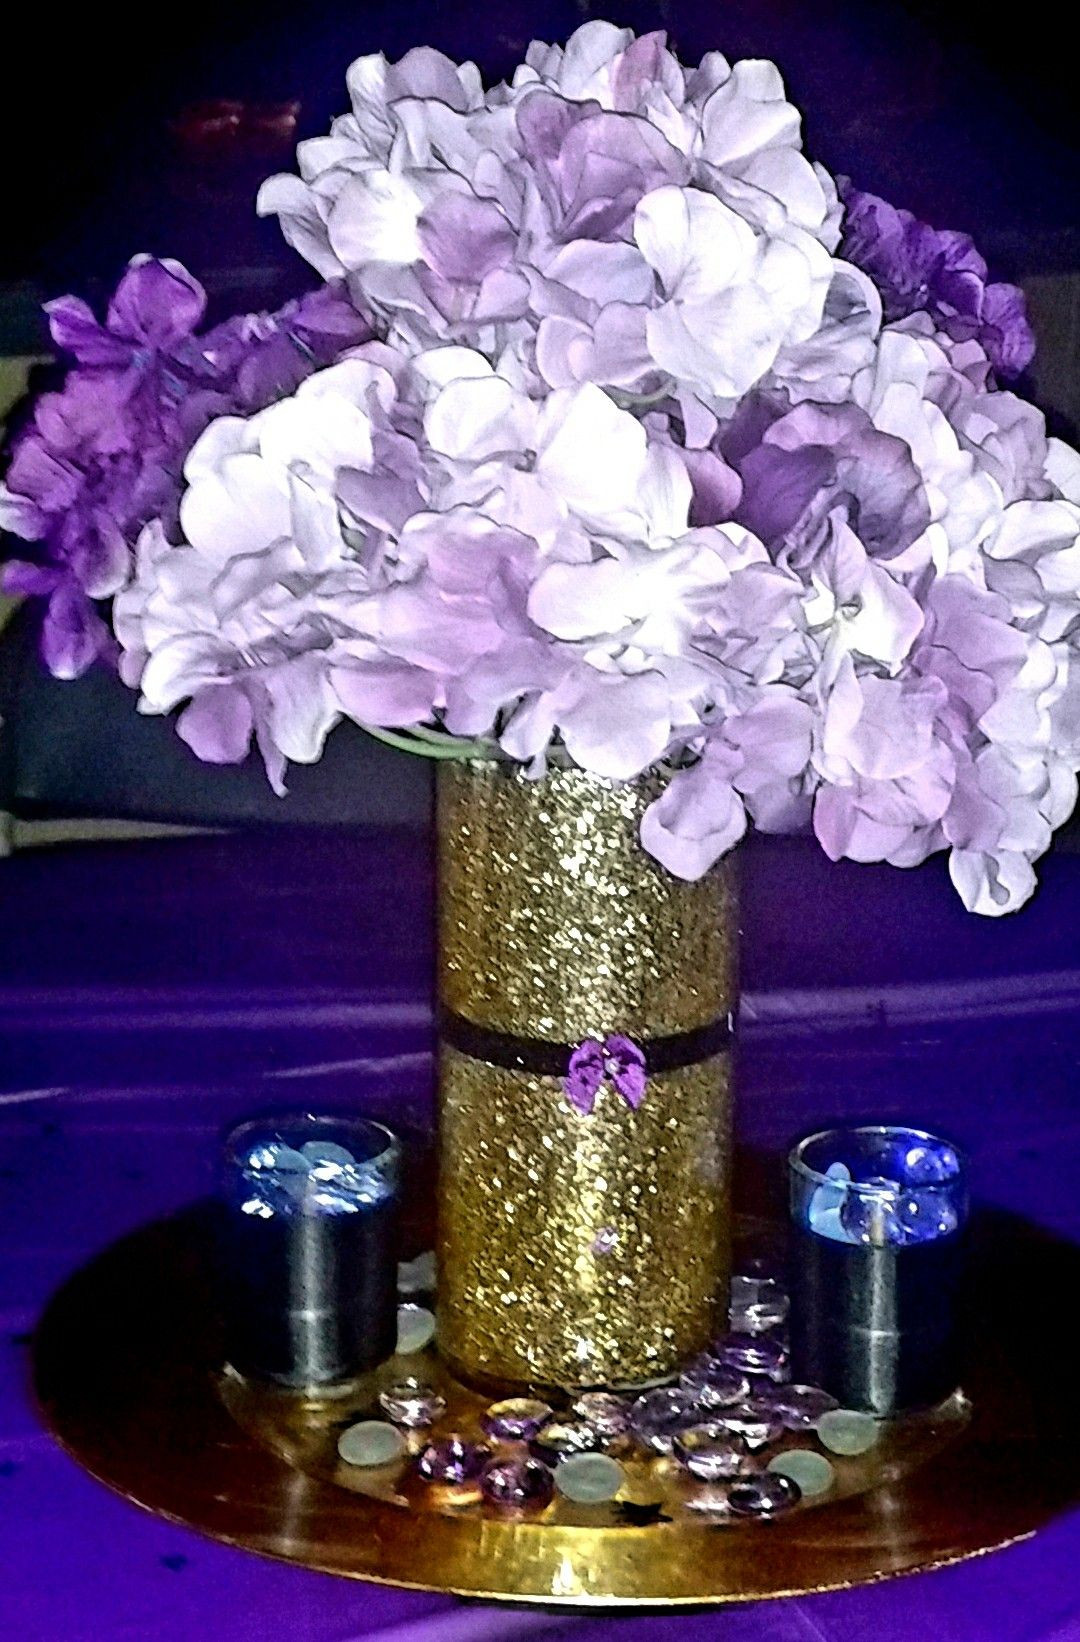 floral vases in bulk of vase floral gold centerpiece picturesque www picturesboss com within beautiful gold glitter vase with purple hydrangeas centerpiece perfect for any occasion jpg 1080x1642 vase floral